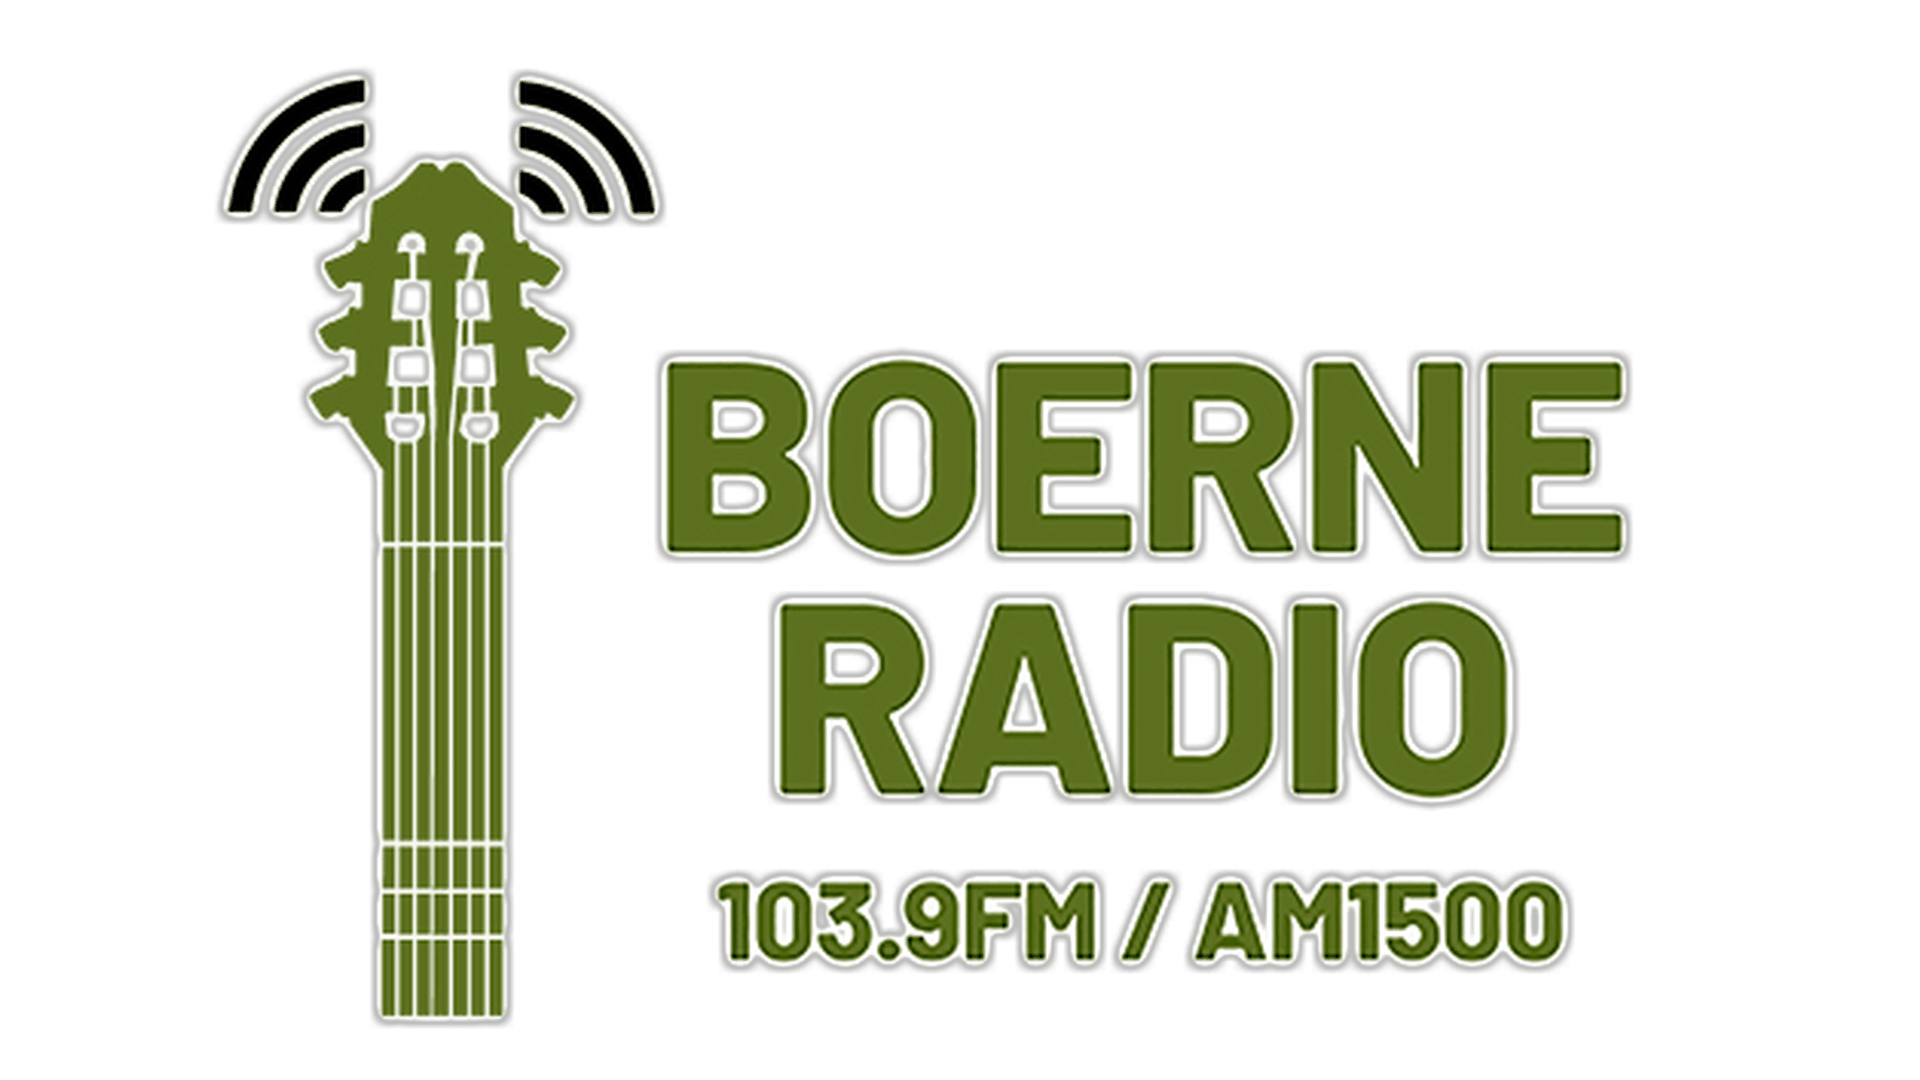 BoerneRadio logo With surround edge